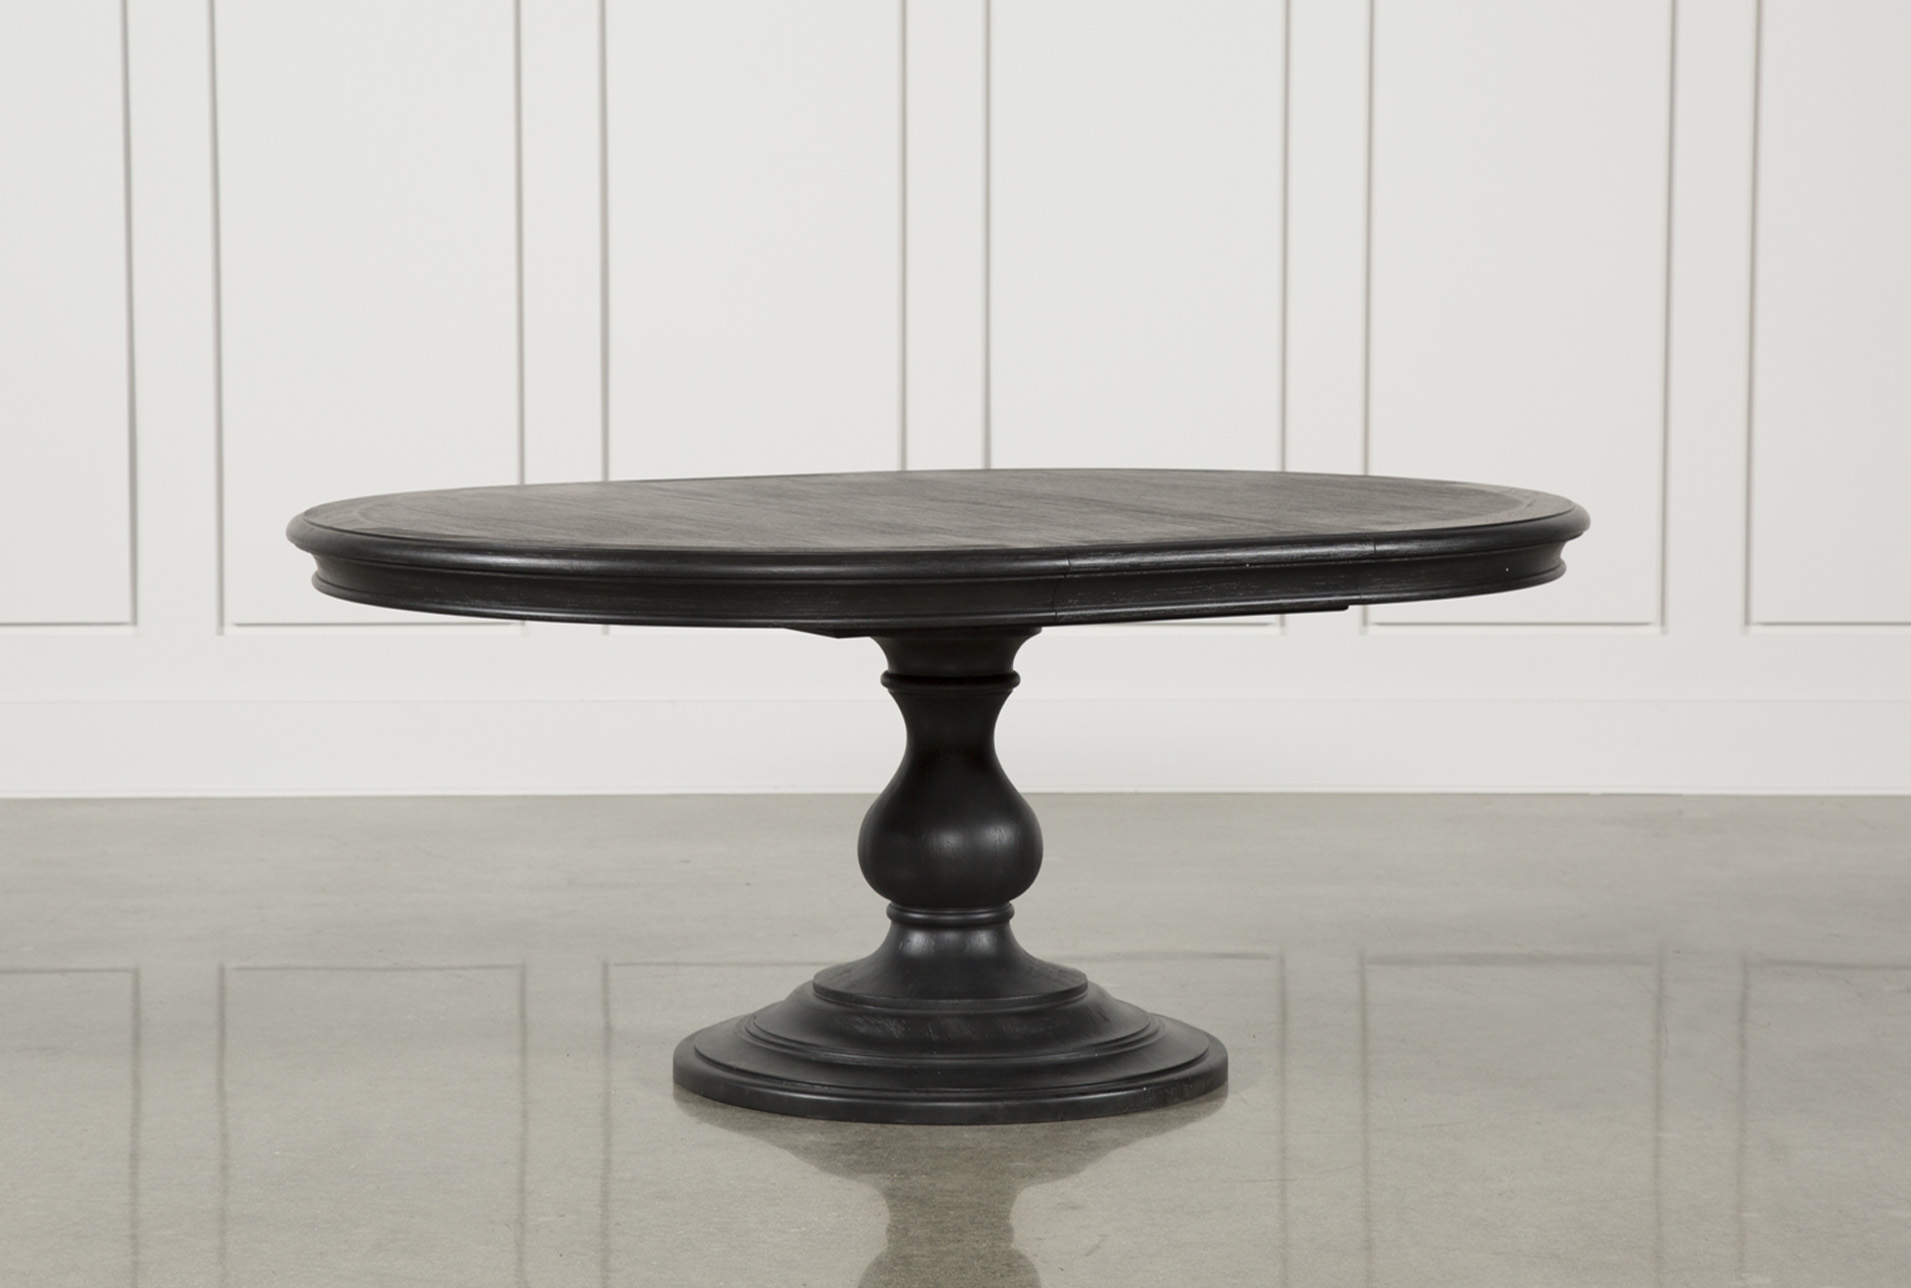 round black kitchen table stools with back caira dining living spaces qty 1 has been successfully added to your cart